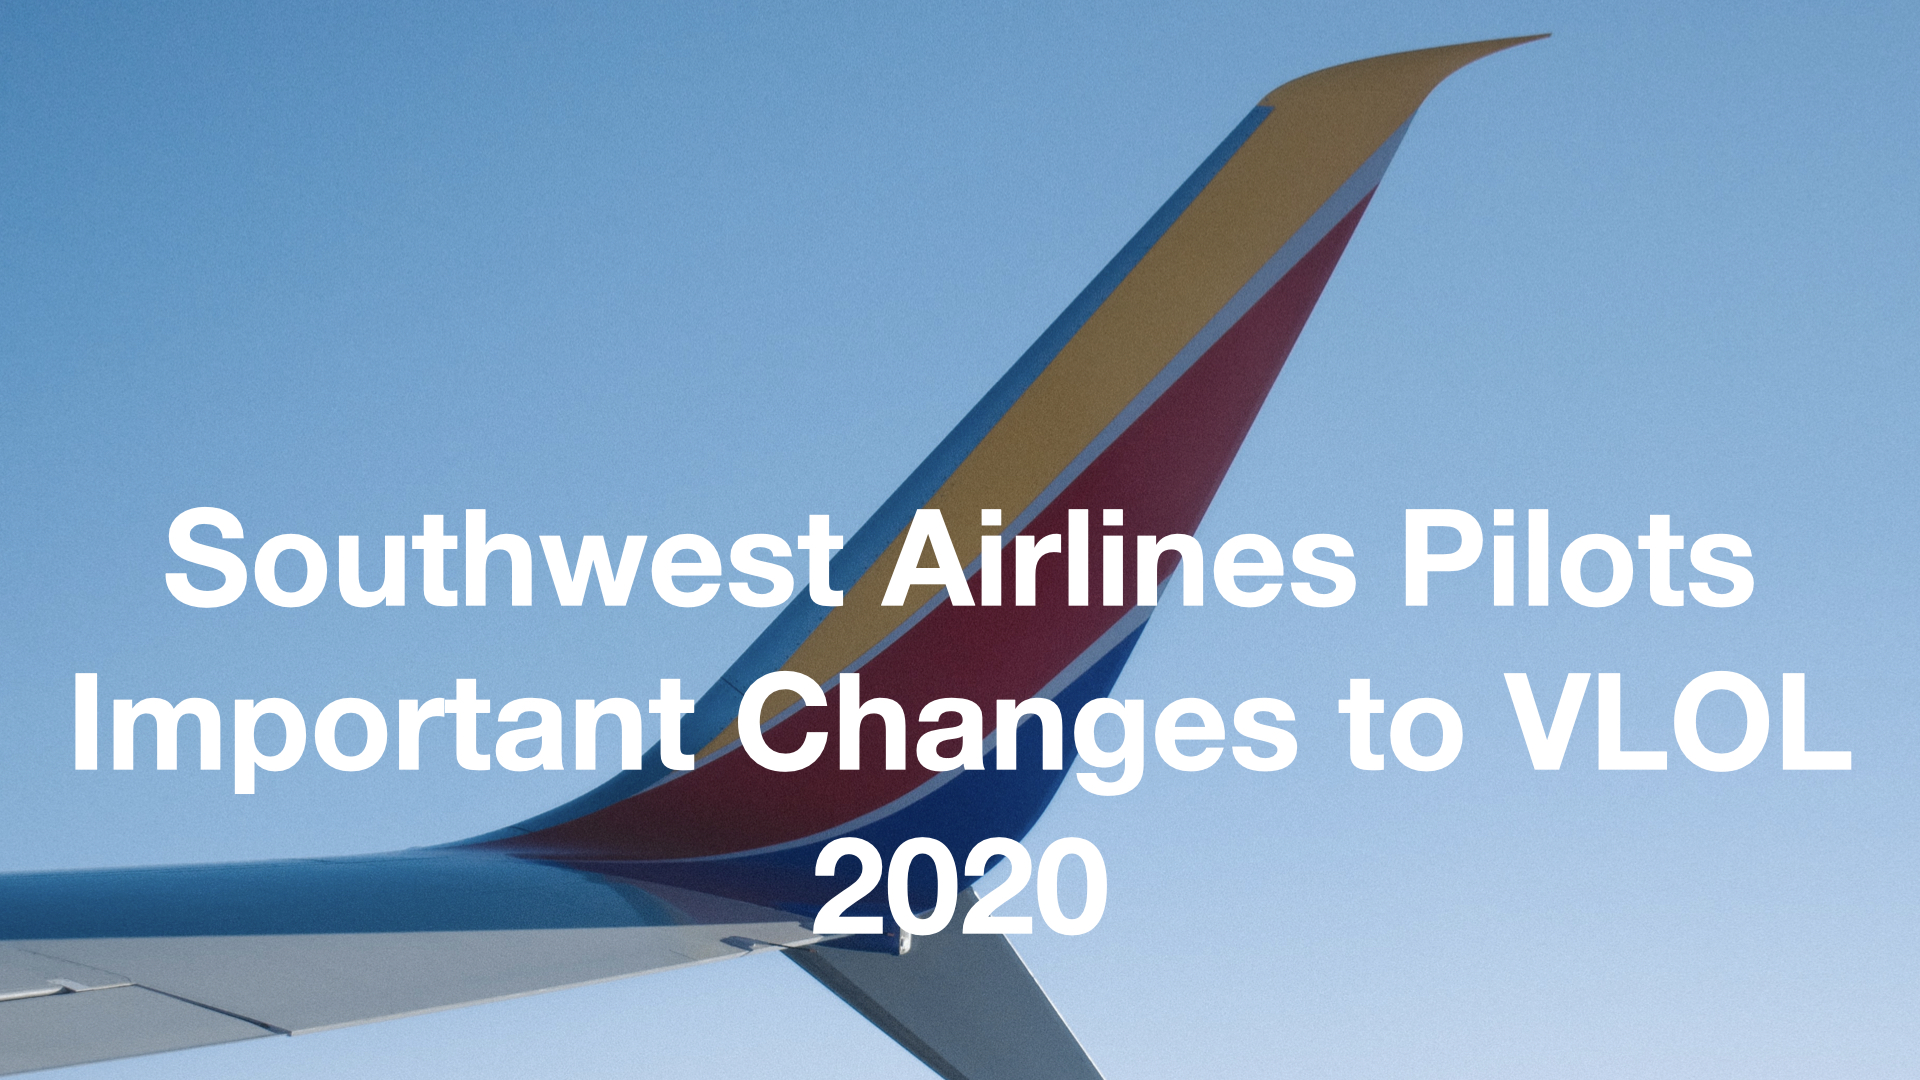 Southwest Airlines Pilot VLOL Critical Changes for 2020